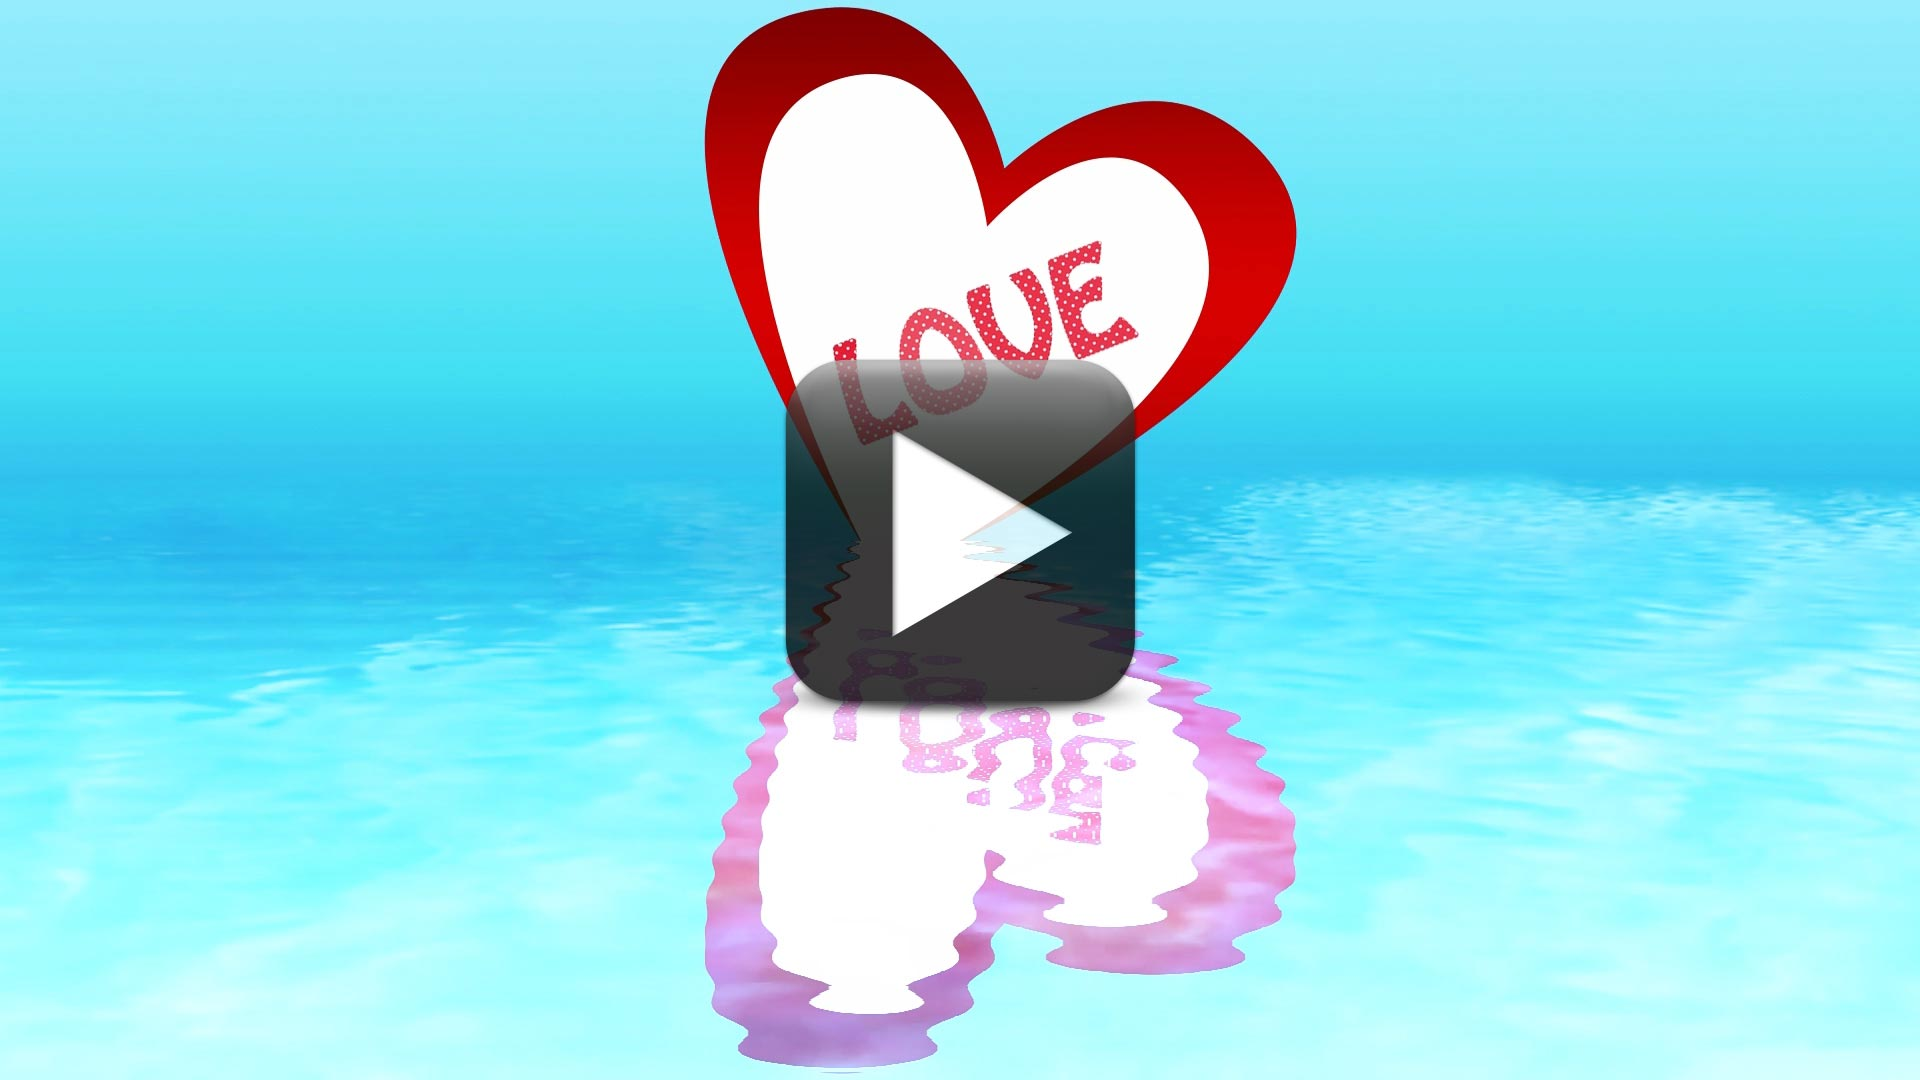 Special Love Effect on Water for Valentine's Day